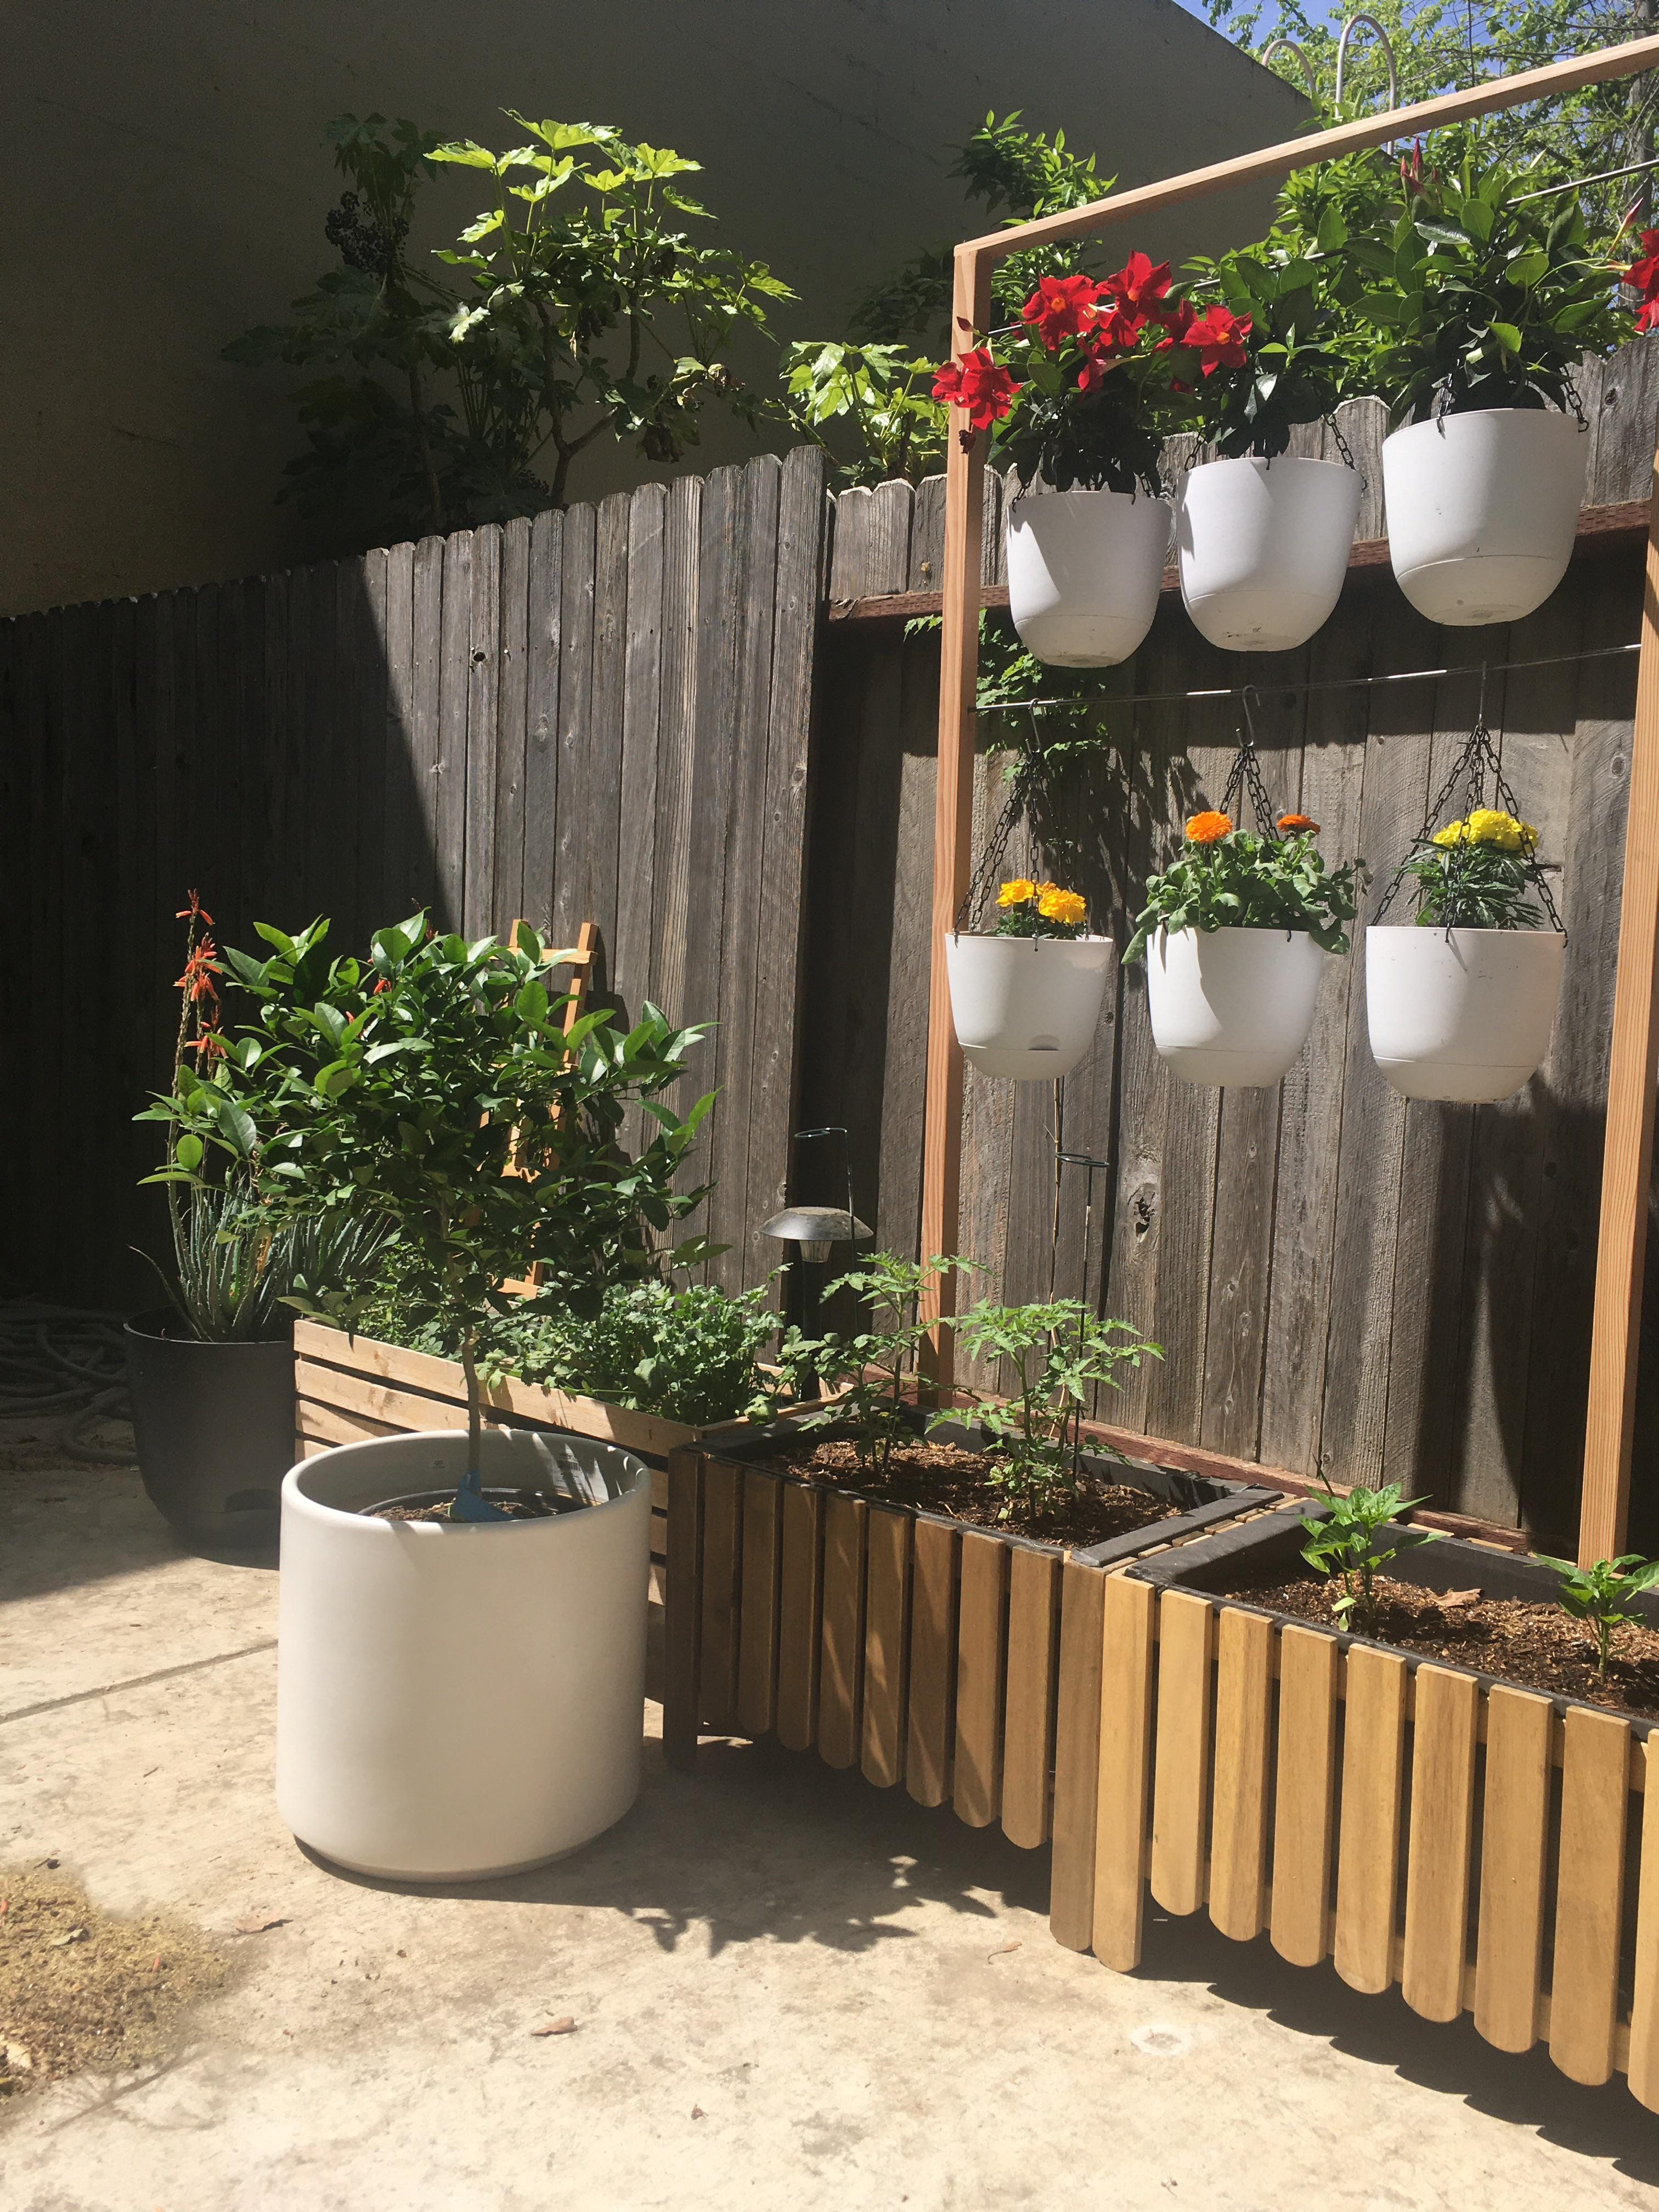 added hanging plants and a lime tree to